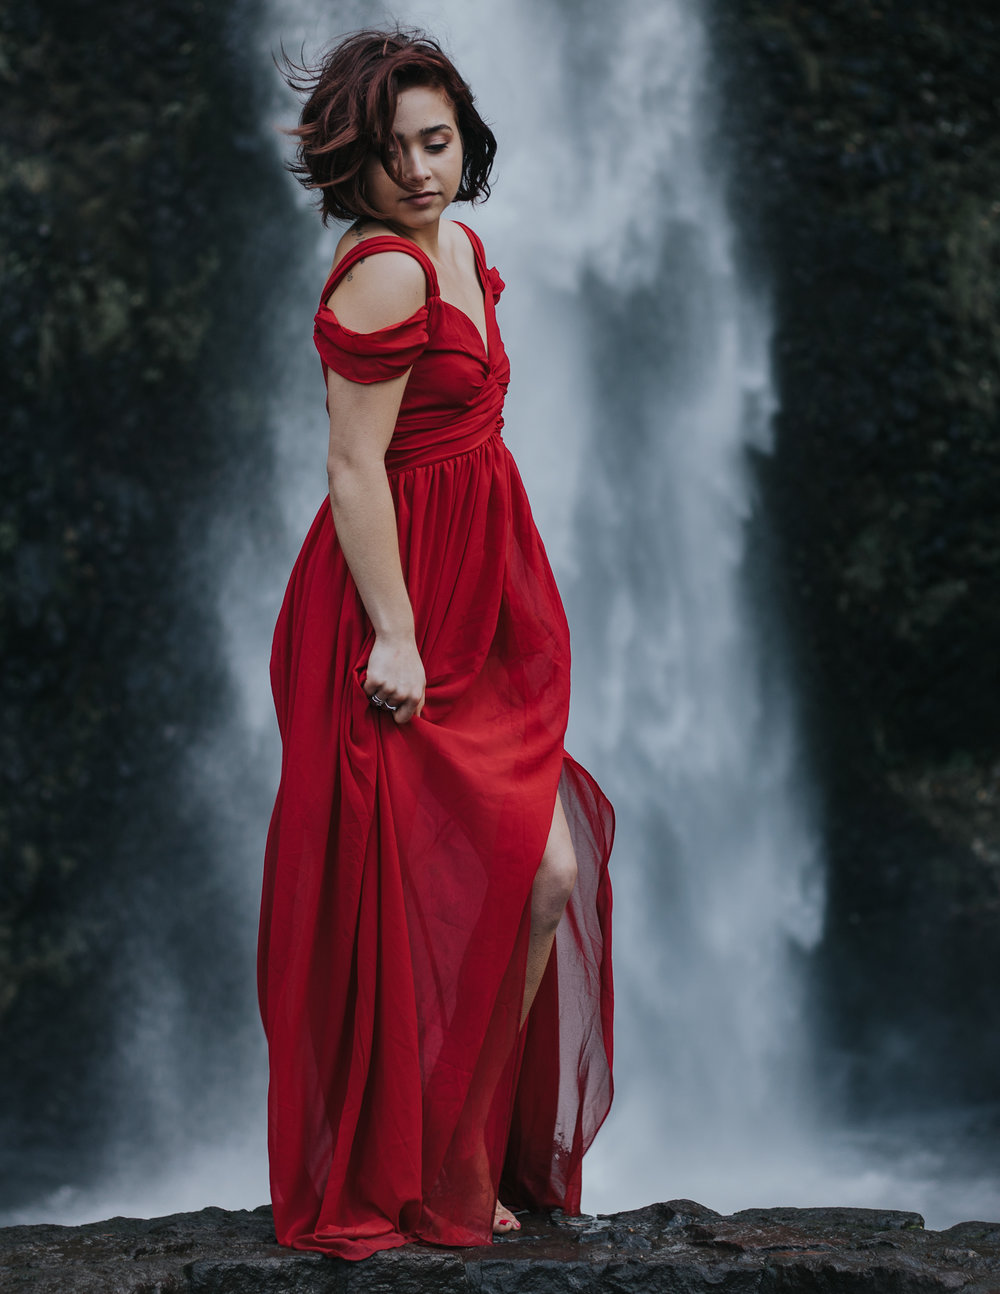 Babe in red dress in front of waterfall, Adventurous Outdoor + Waterfall Couples Session | Croative Photography